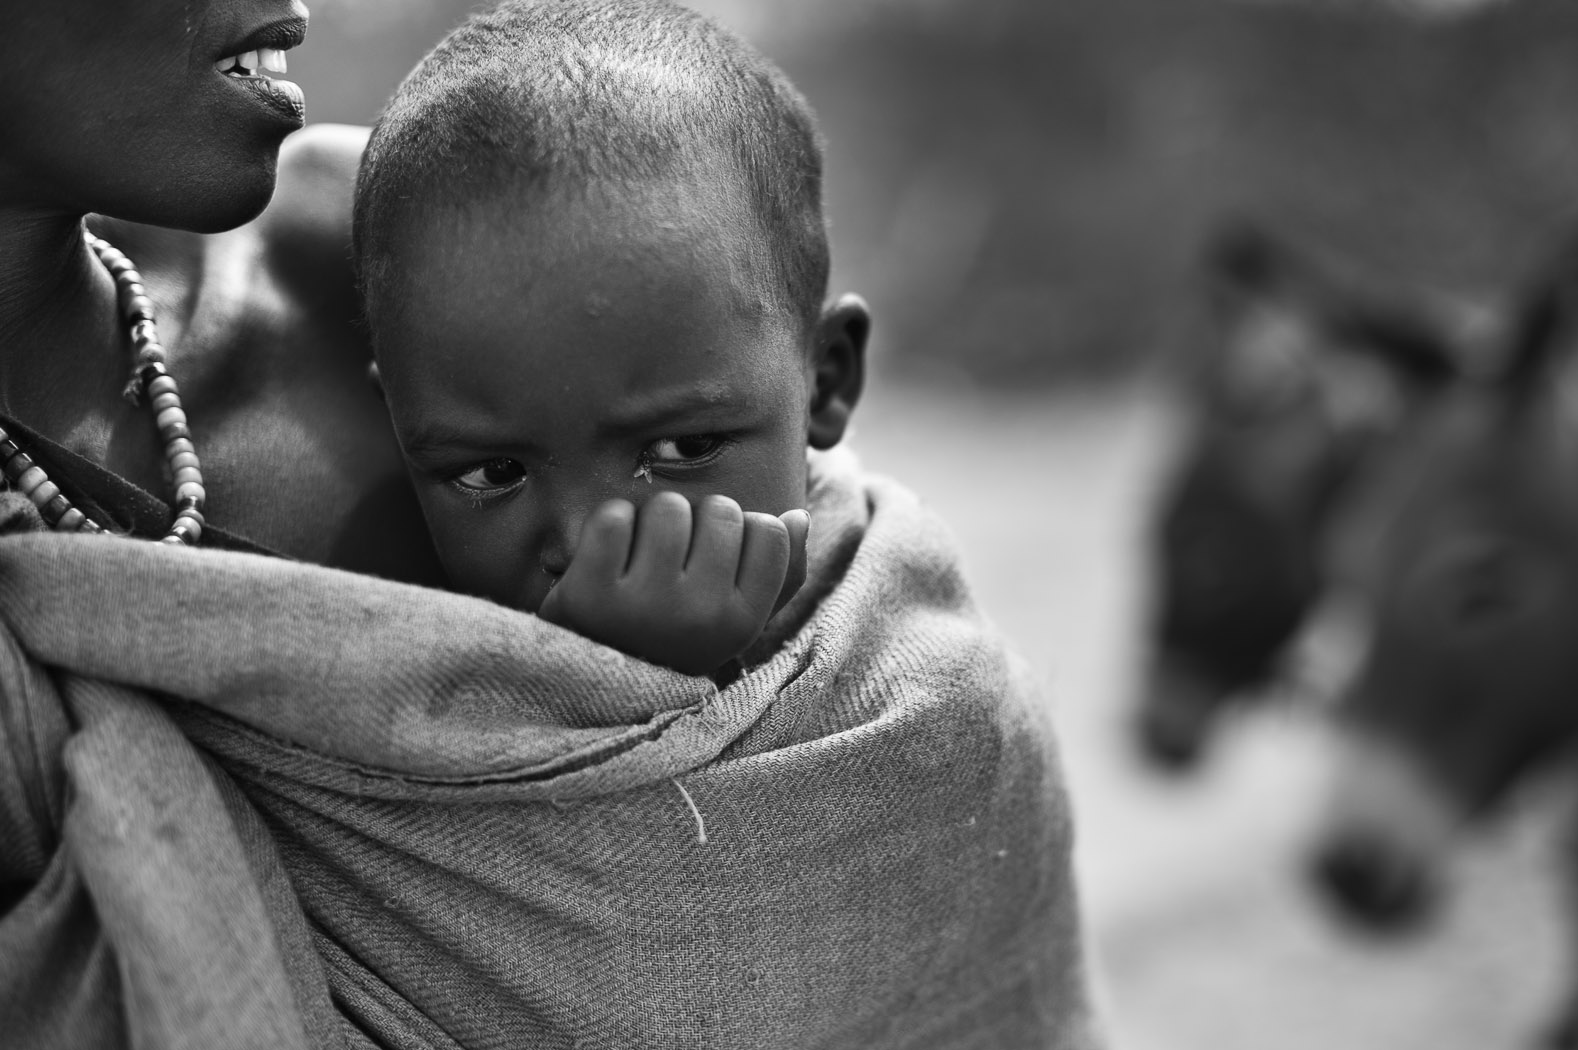 Three year-old Sadiya Ali and her mother crossed the Somali-Kenyan border with the rest of their family. Carrying very few belongings on a donkey cart, they are hoping to reach the Kenyan refugee camp of Dadaab - the biggest in the world. There is still around 100km of dusty road ahead of them.